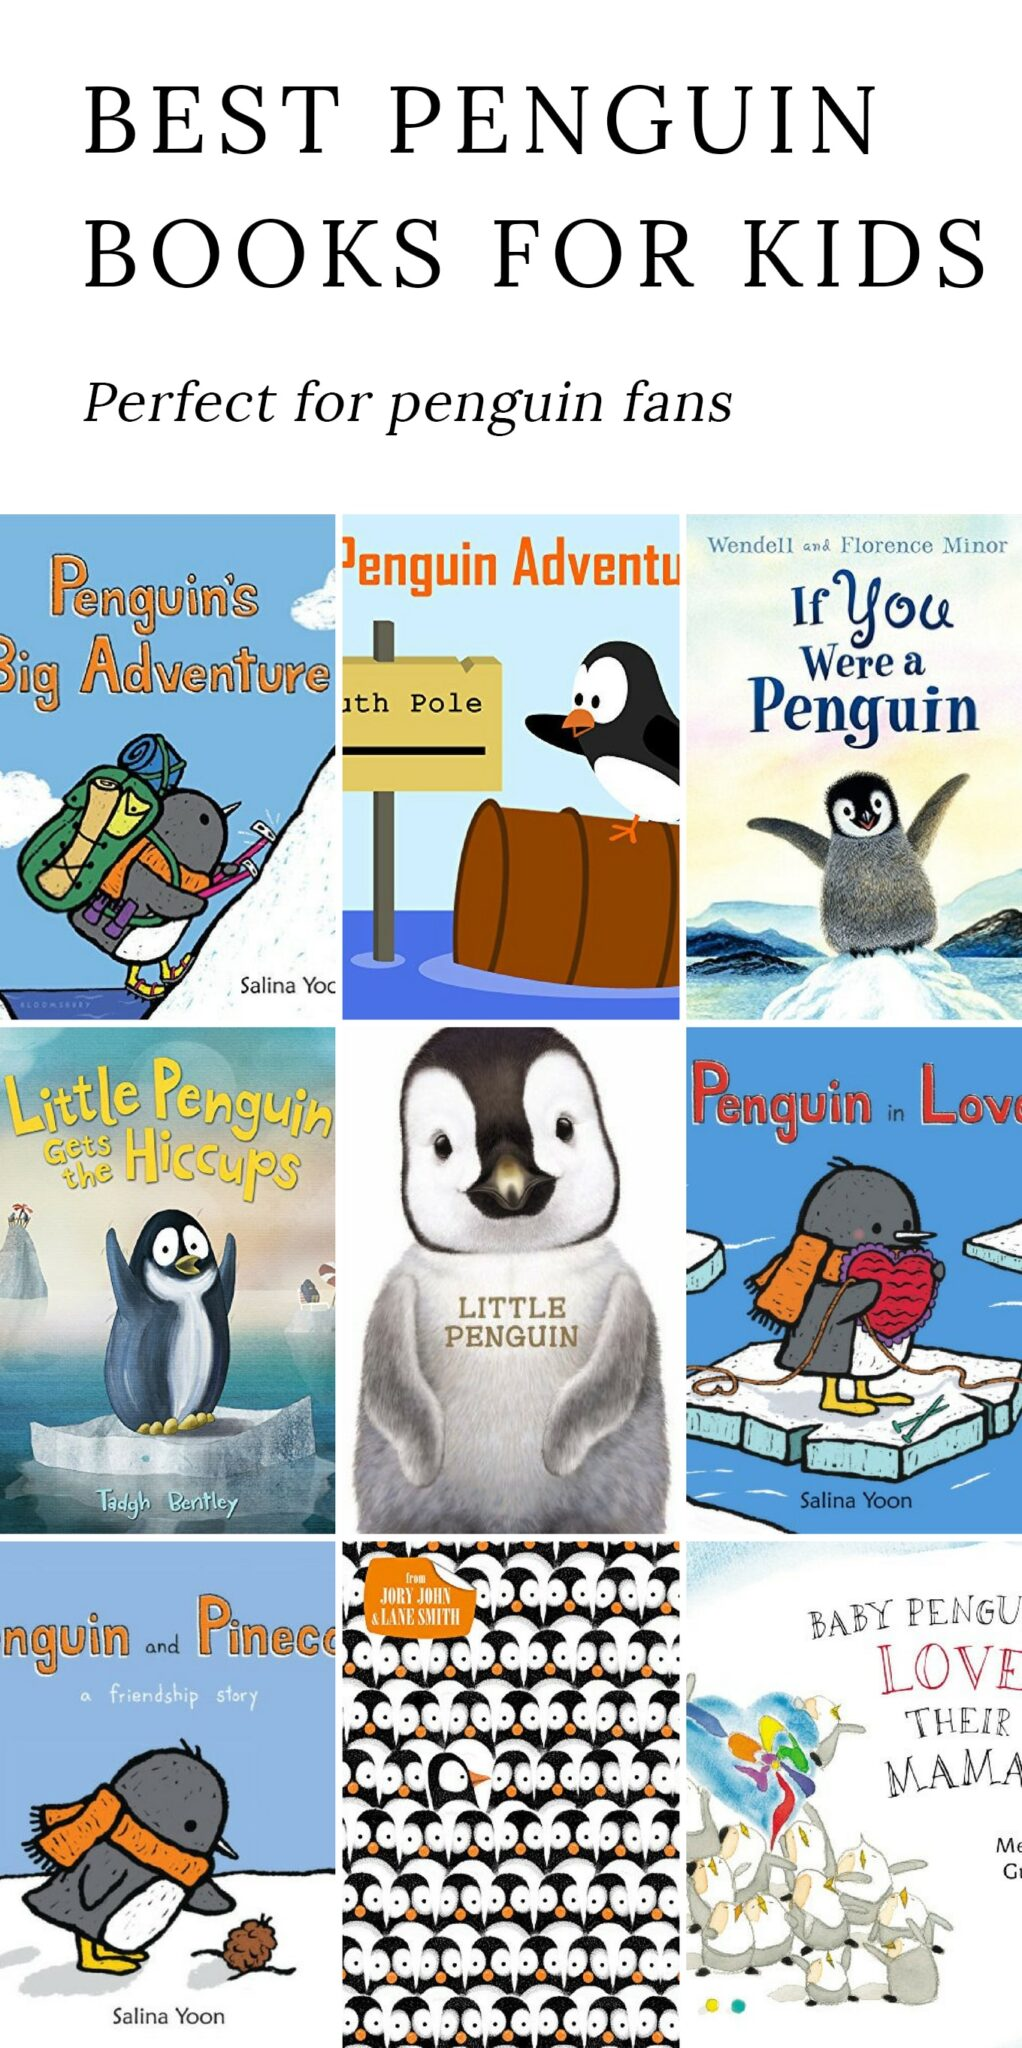 A list of the best penguinbooks for kids, perfect for learning about penguins and celebratingice, snow, and fresh winter air! #penguin #books #kids via @firefliesandmudpies